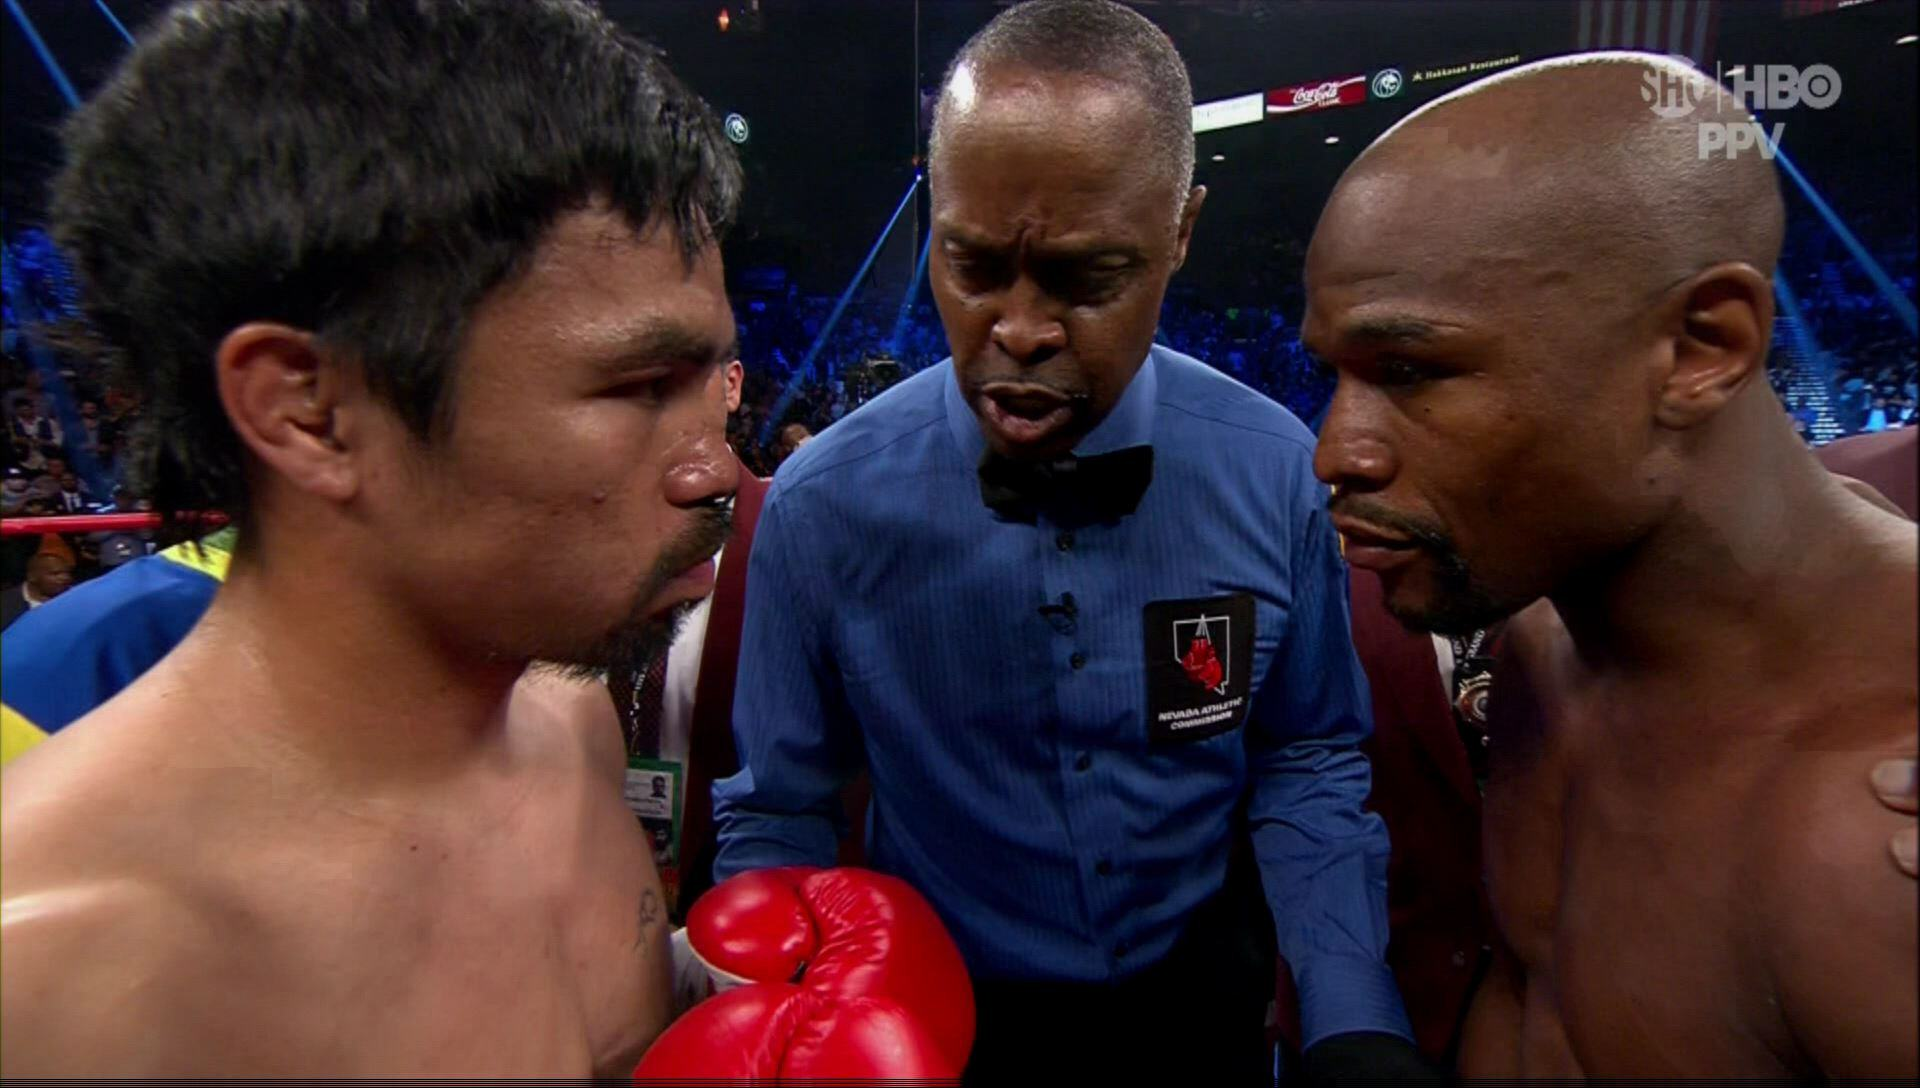 Manny Pacquiao Accuses Floyd Mayweather Of Running, Wants A Rematch UNILAD mayweather pac 24